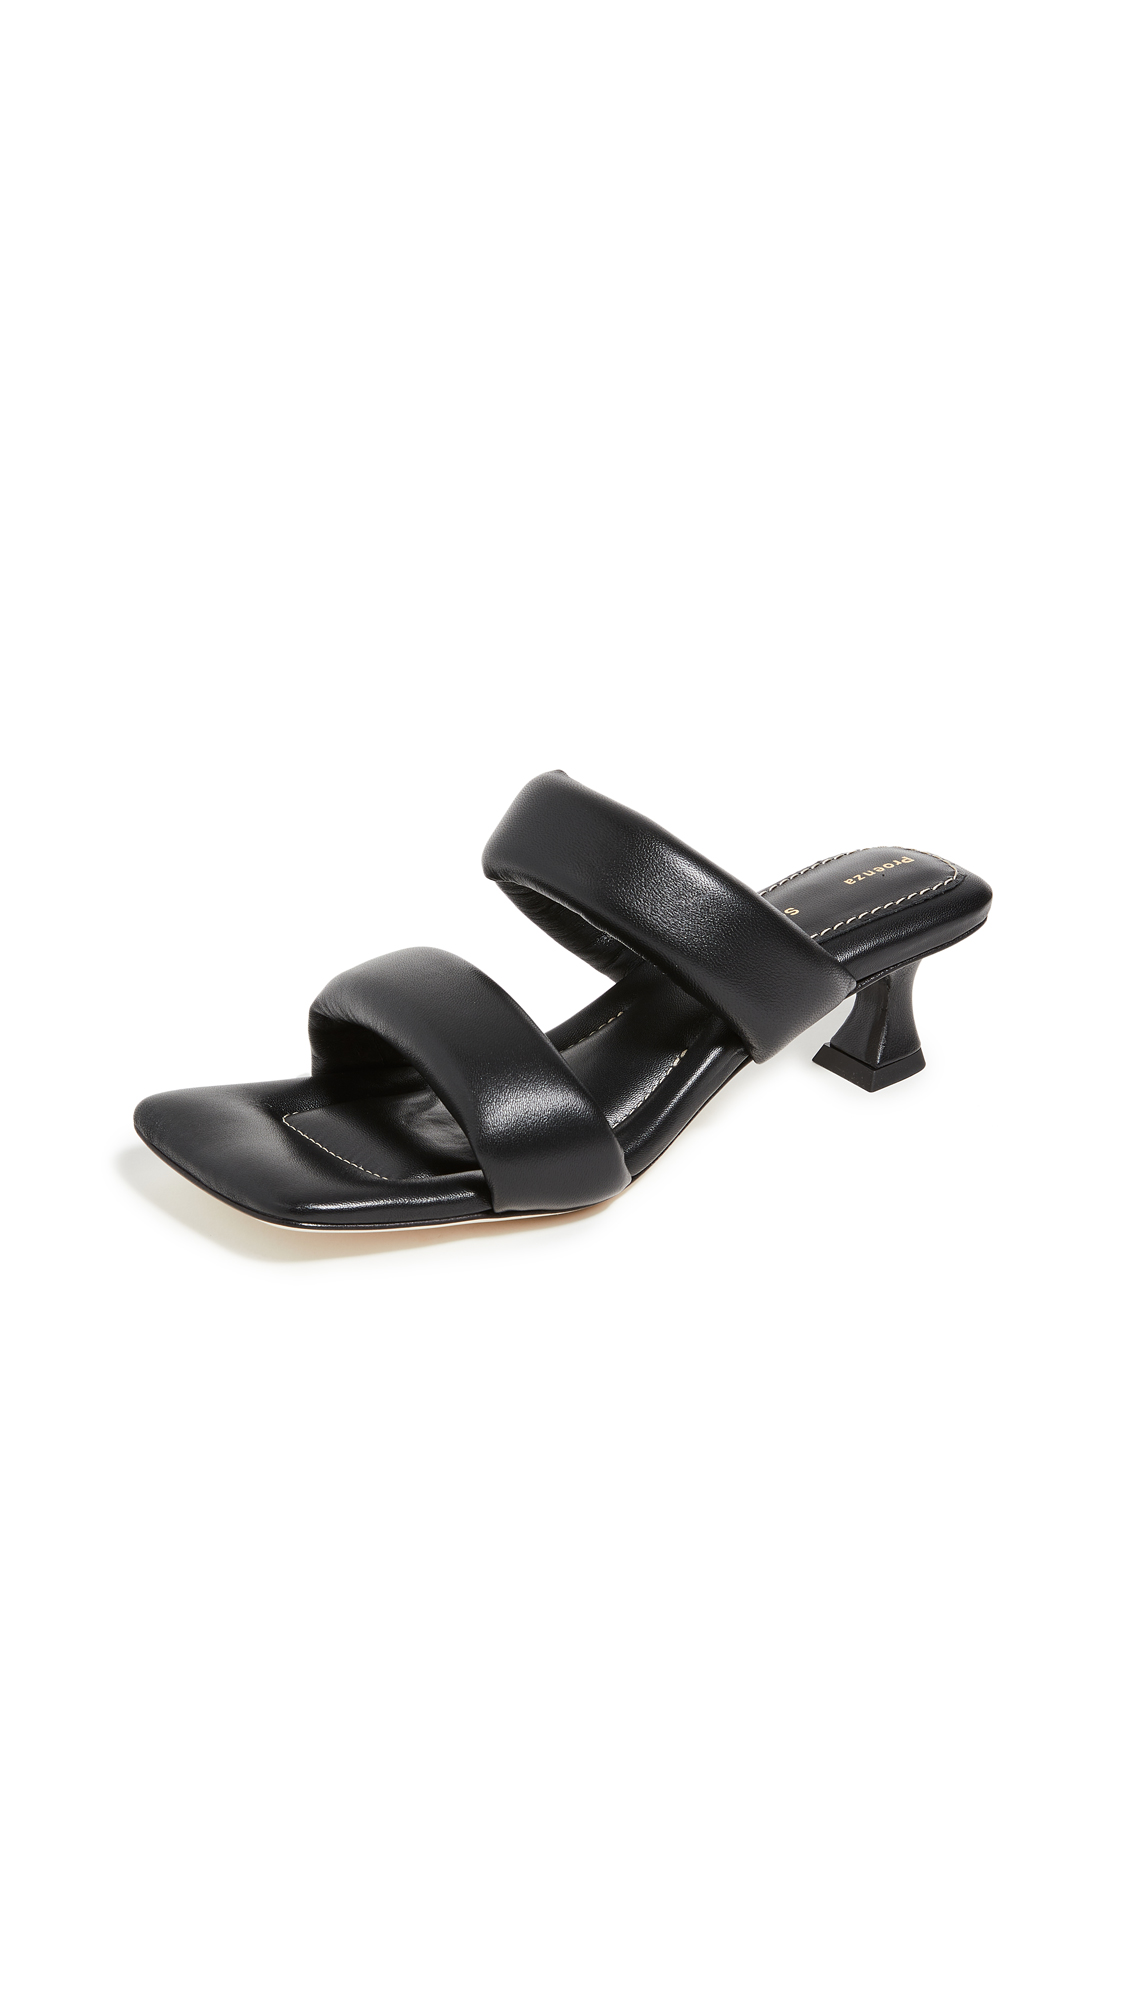 Proenza Schouler DOUBLE BAND SQUARE TOE SLIDES